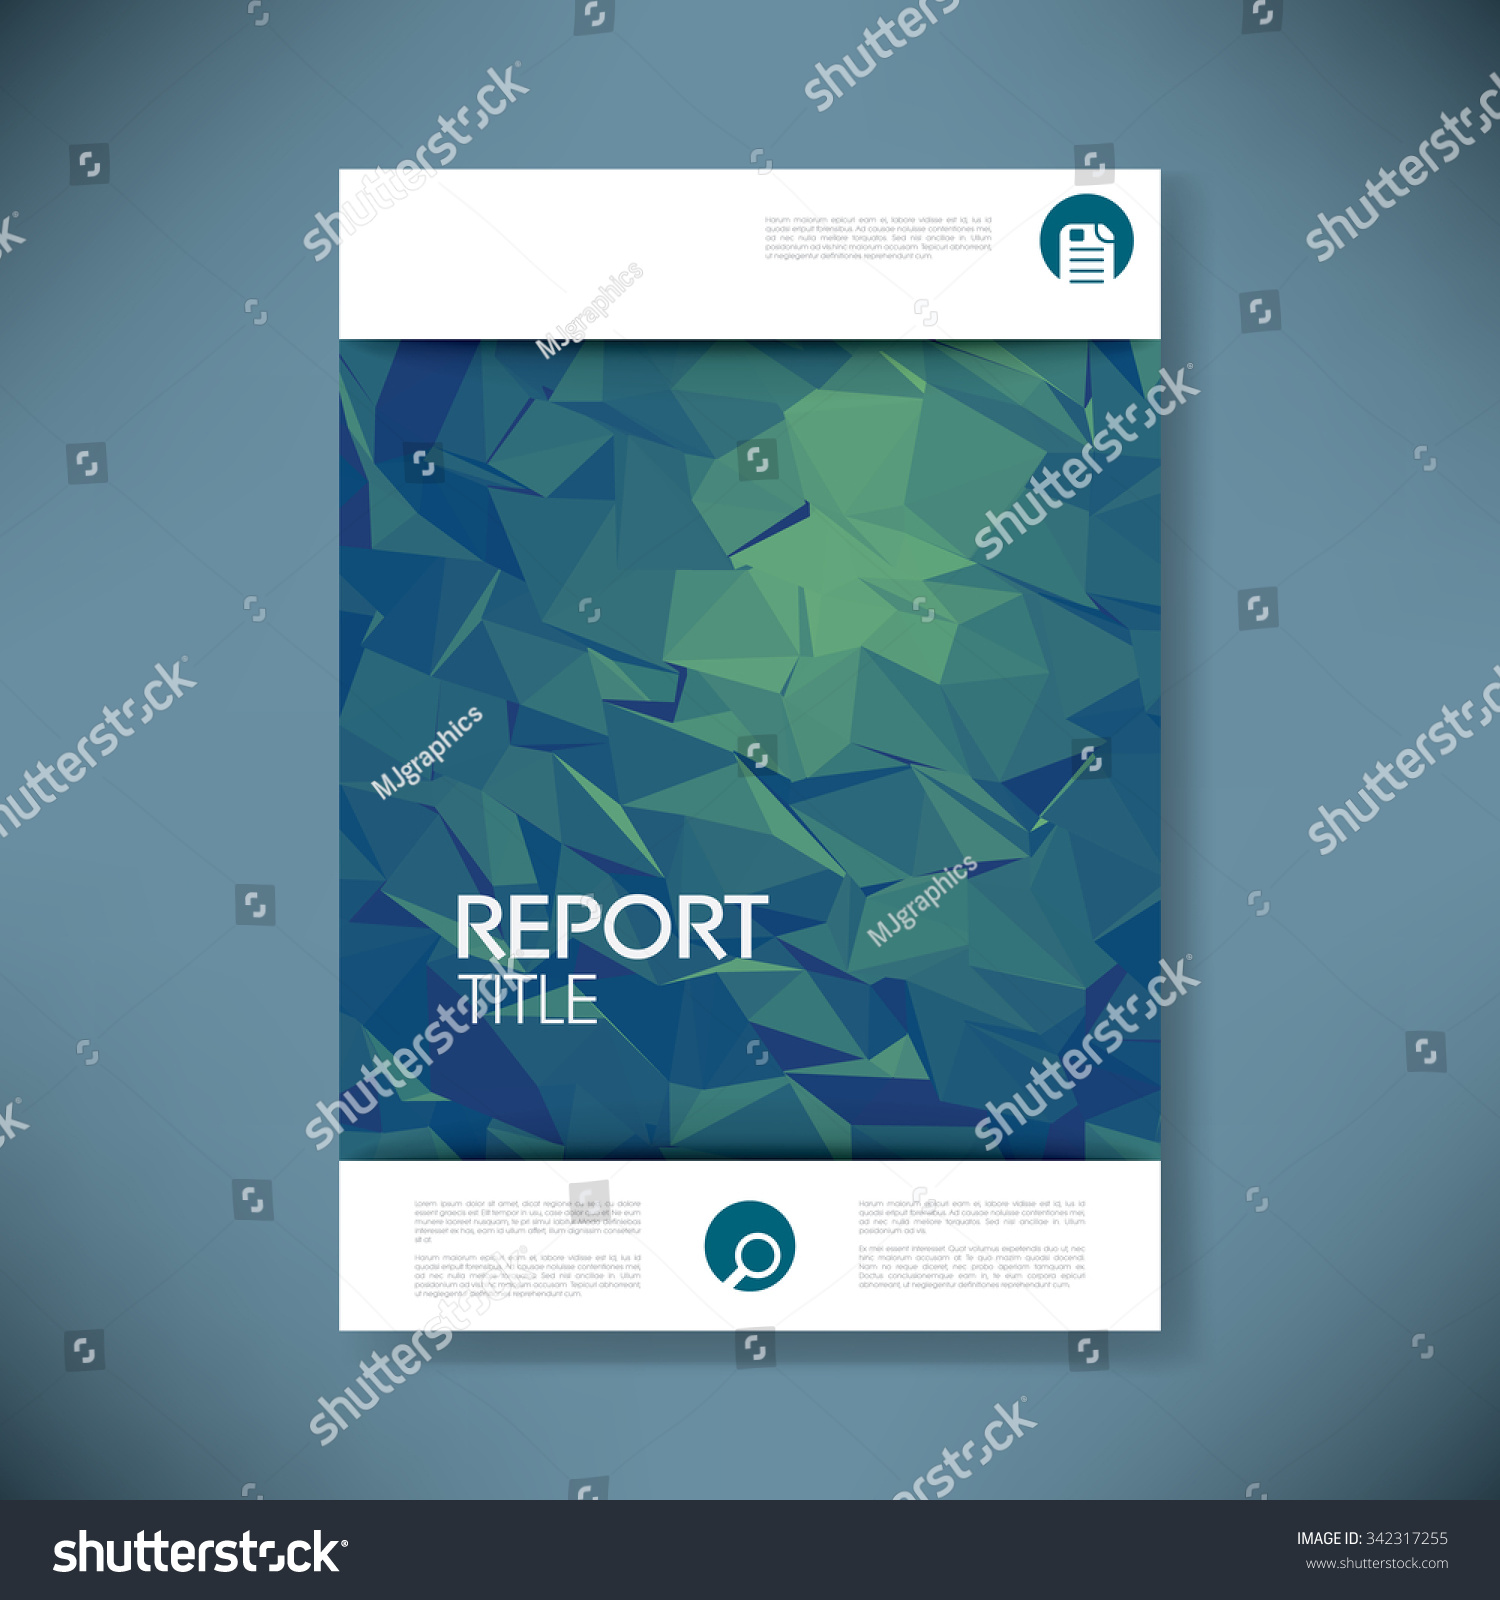 report cover template d low poly stock vector  report cover template 3d low poly vector background business brochure or presentation title page